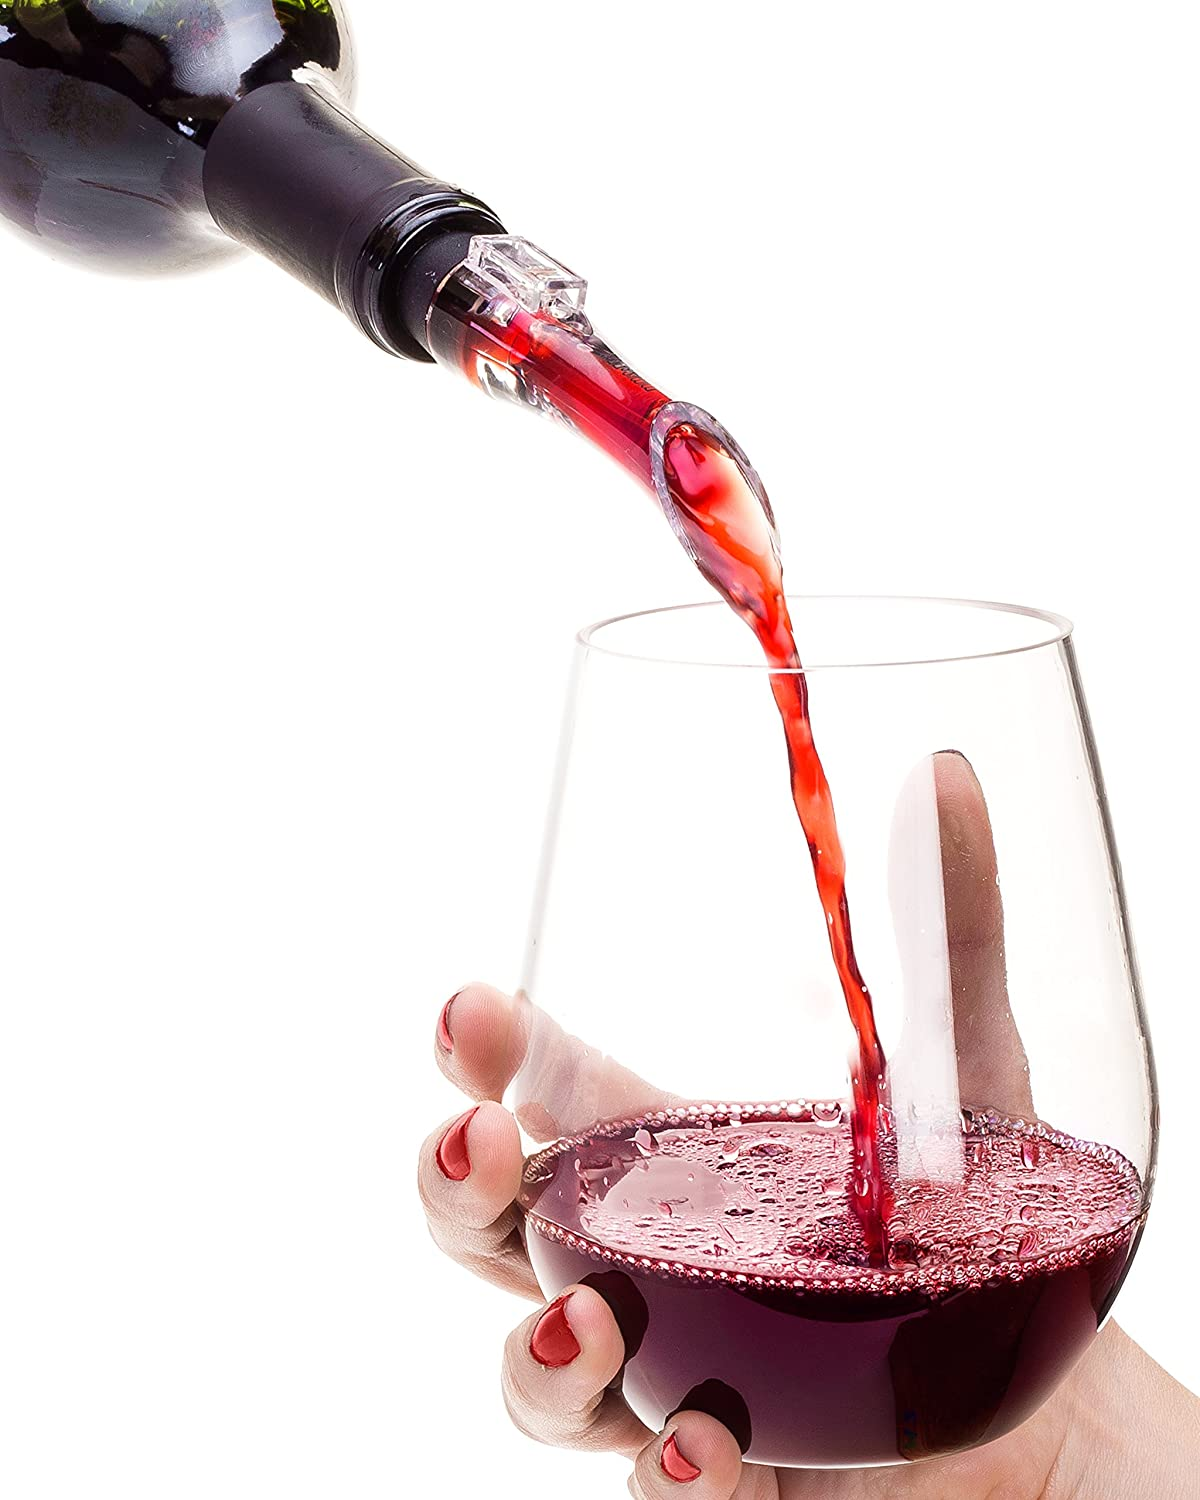 Best Wine Max 78% OFF Aerator Pourer Department store for Gift White Unique Red